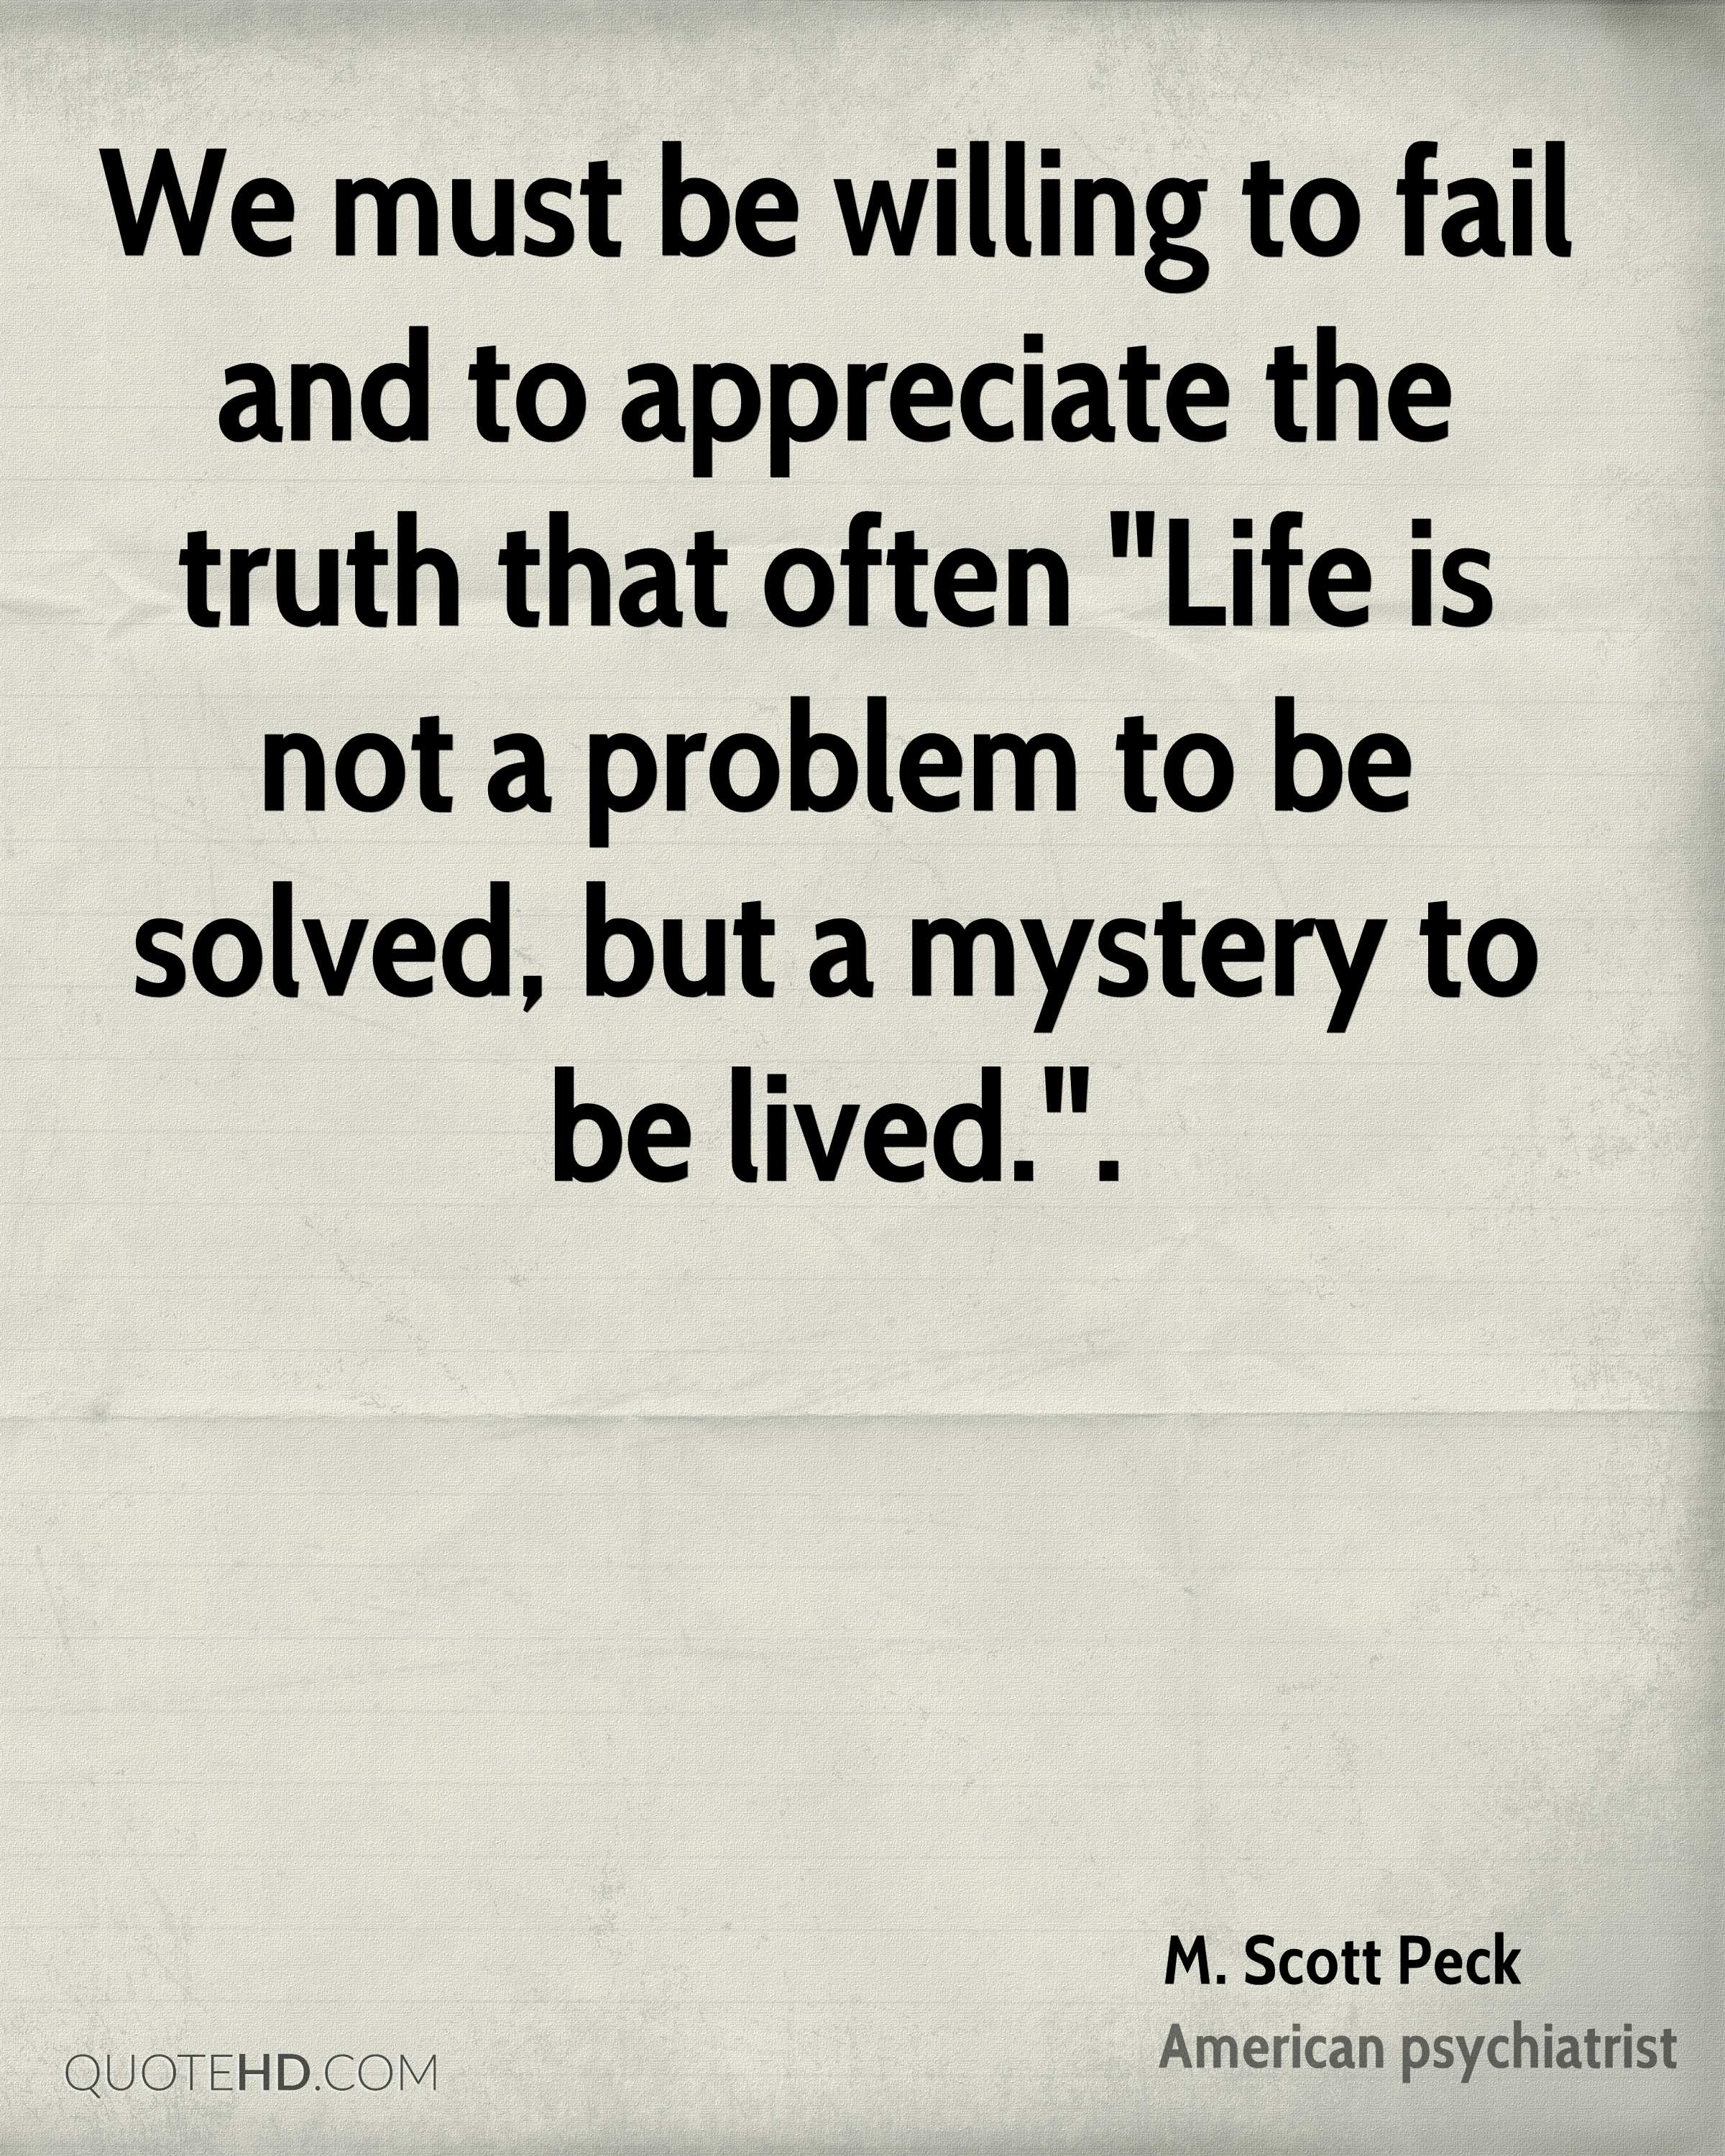 The Truth Of Life Quotes Impressive Mscott Peck Life Quotes  Quotehd